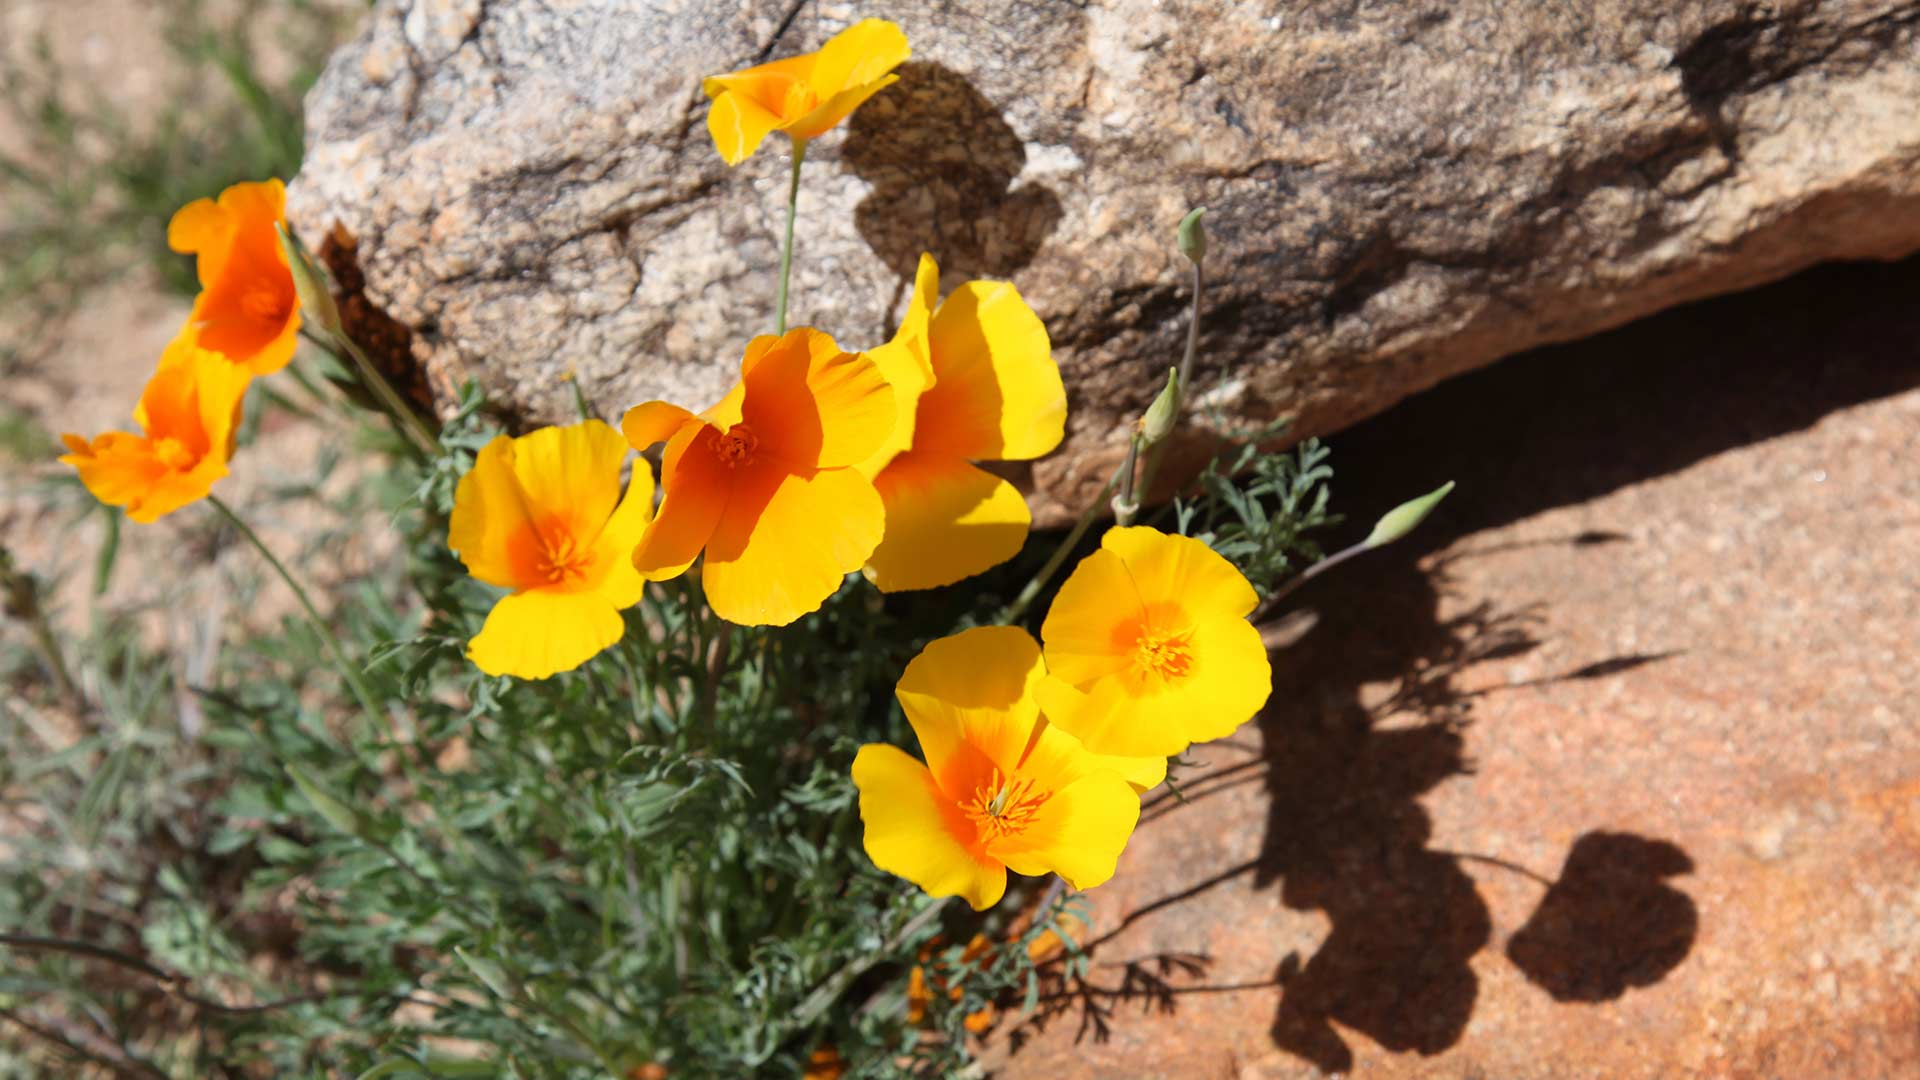 Many poppies are blooming at Catalina State Park, providing interesting color and shadows in the area, March 4, 2019.